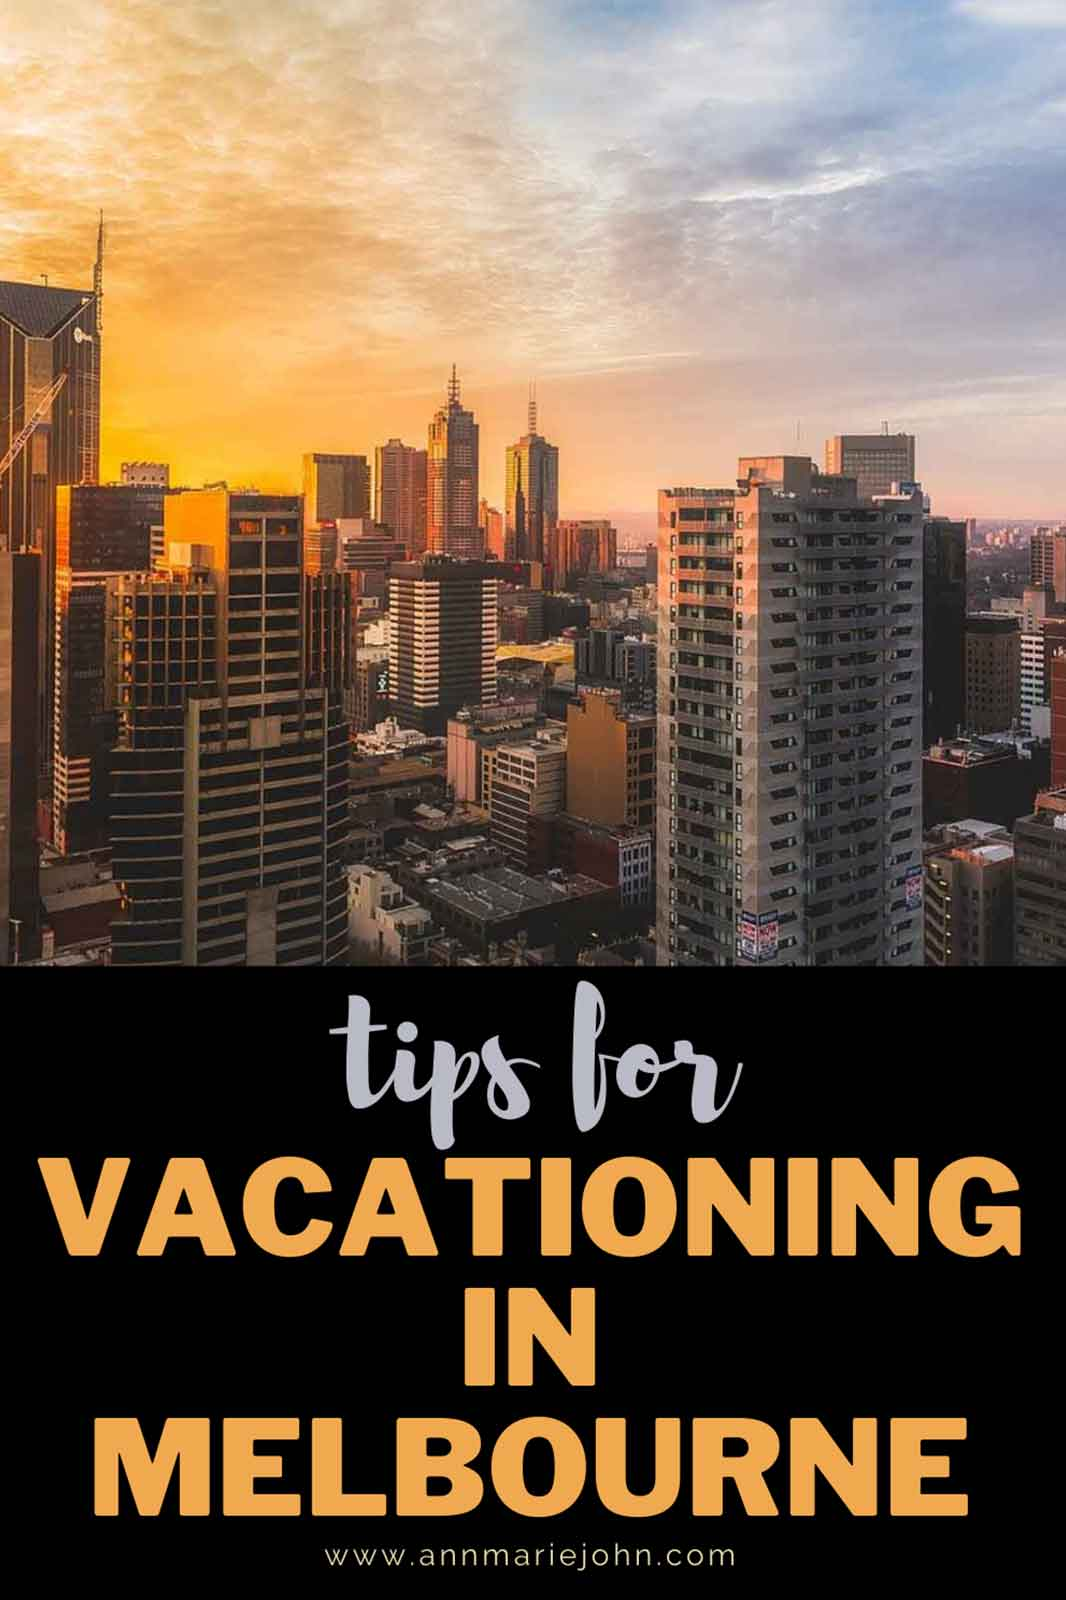 Vacationing in Melbourne - Tips for Inquisitive Travelers